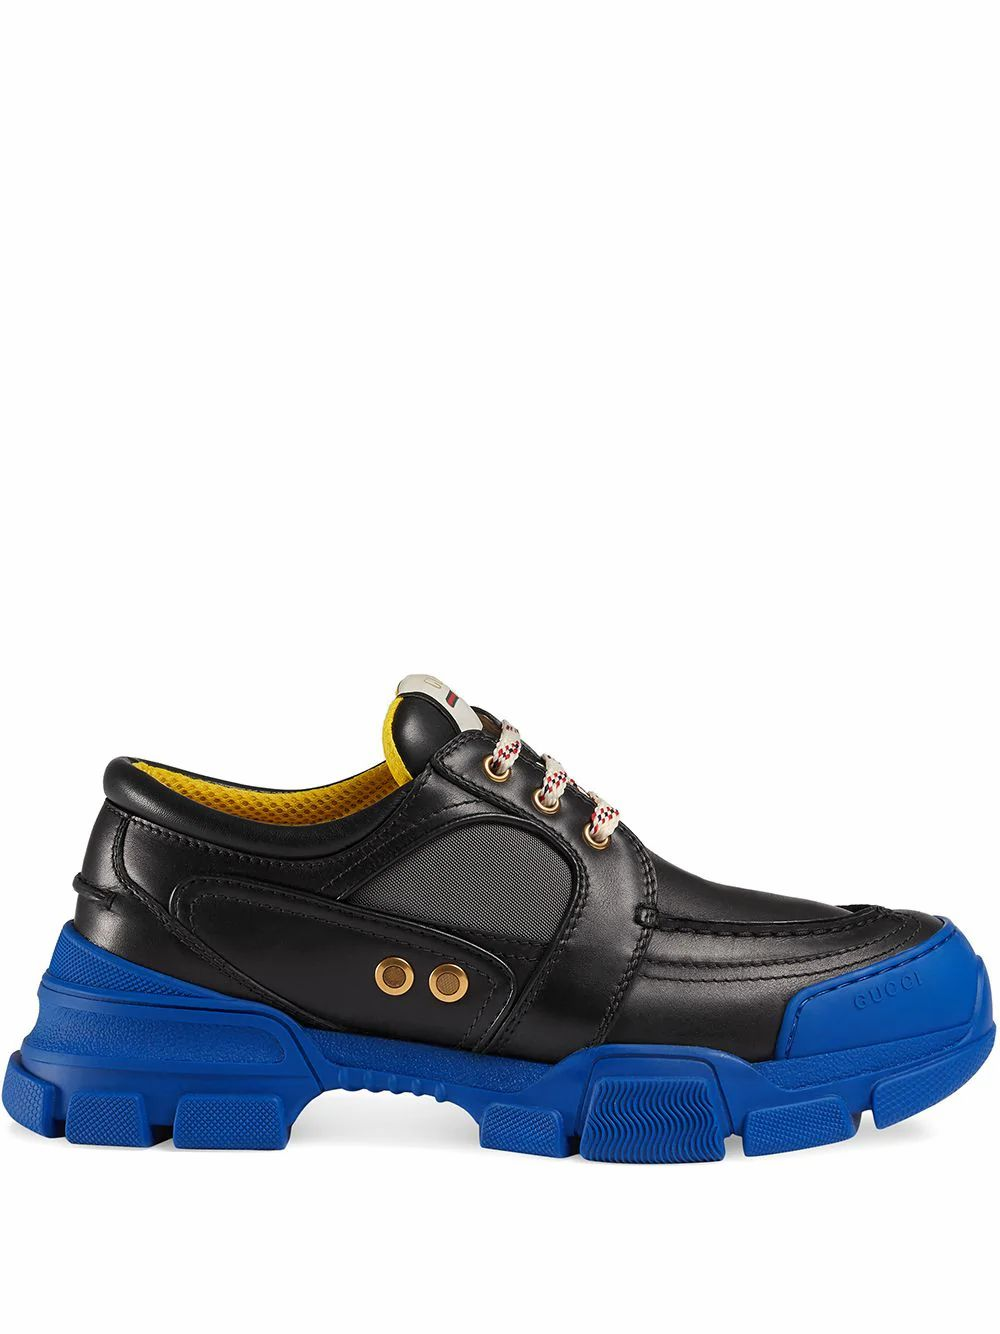 Gucci GUCCI MEN'S BLACK LEATHER SNEAKERS